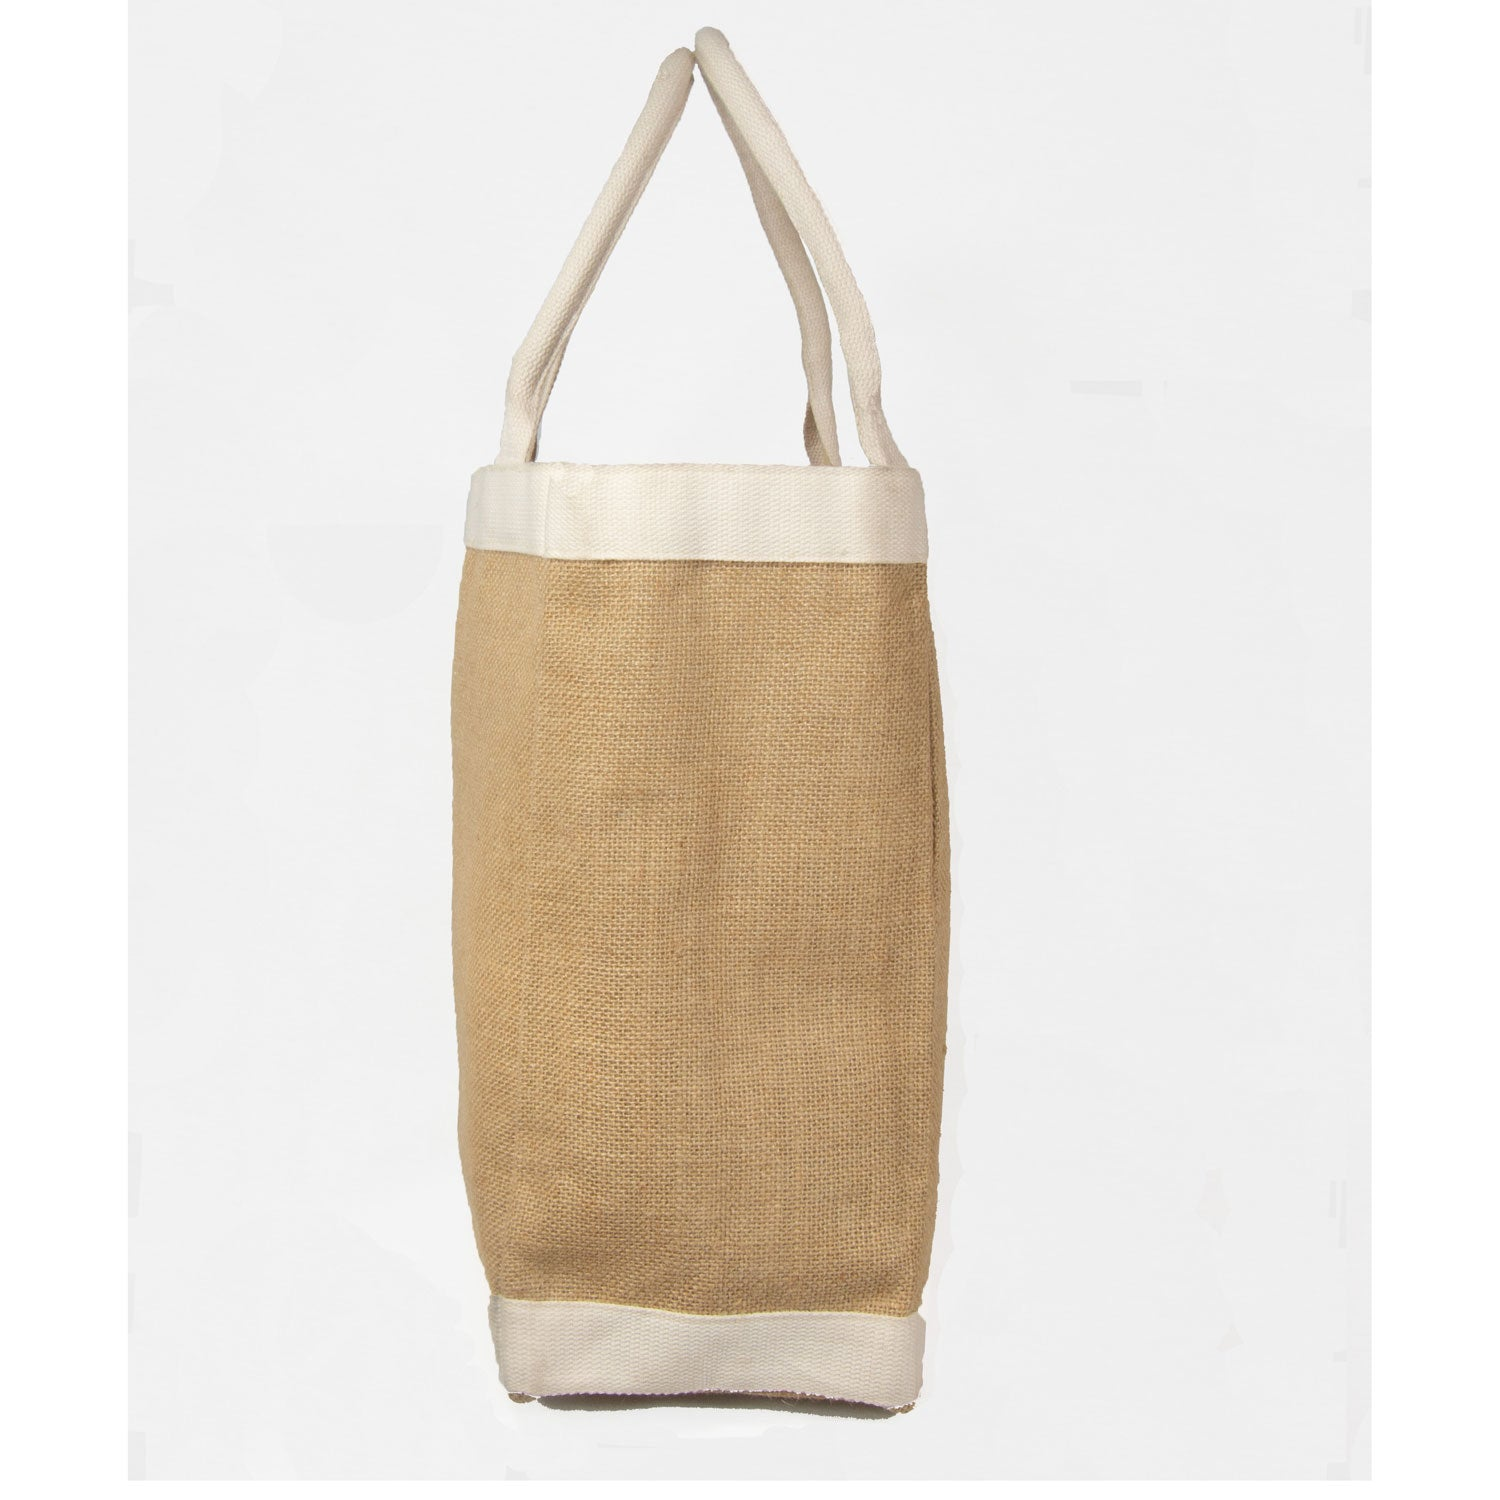 The Baguette - NewBlue Bags